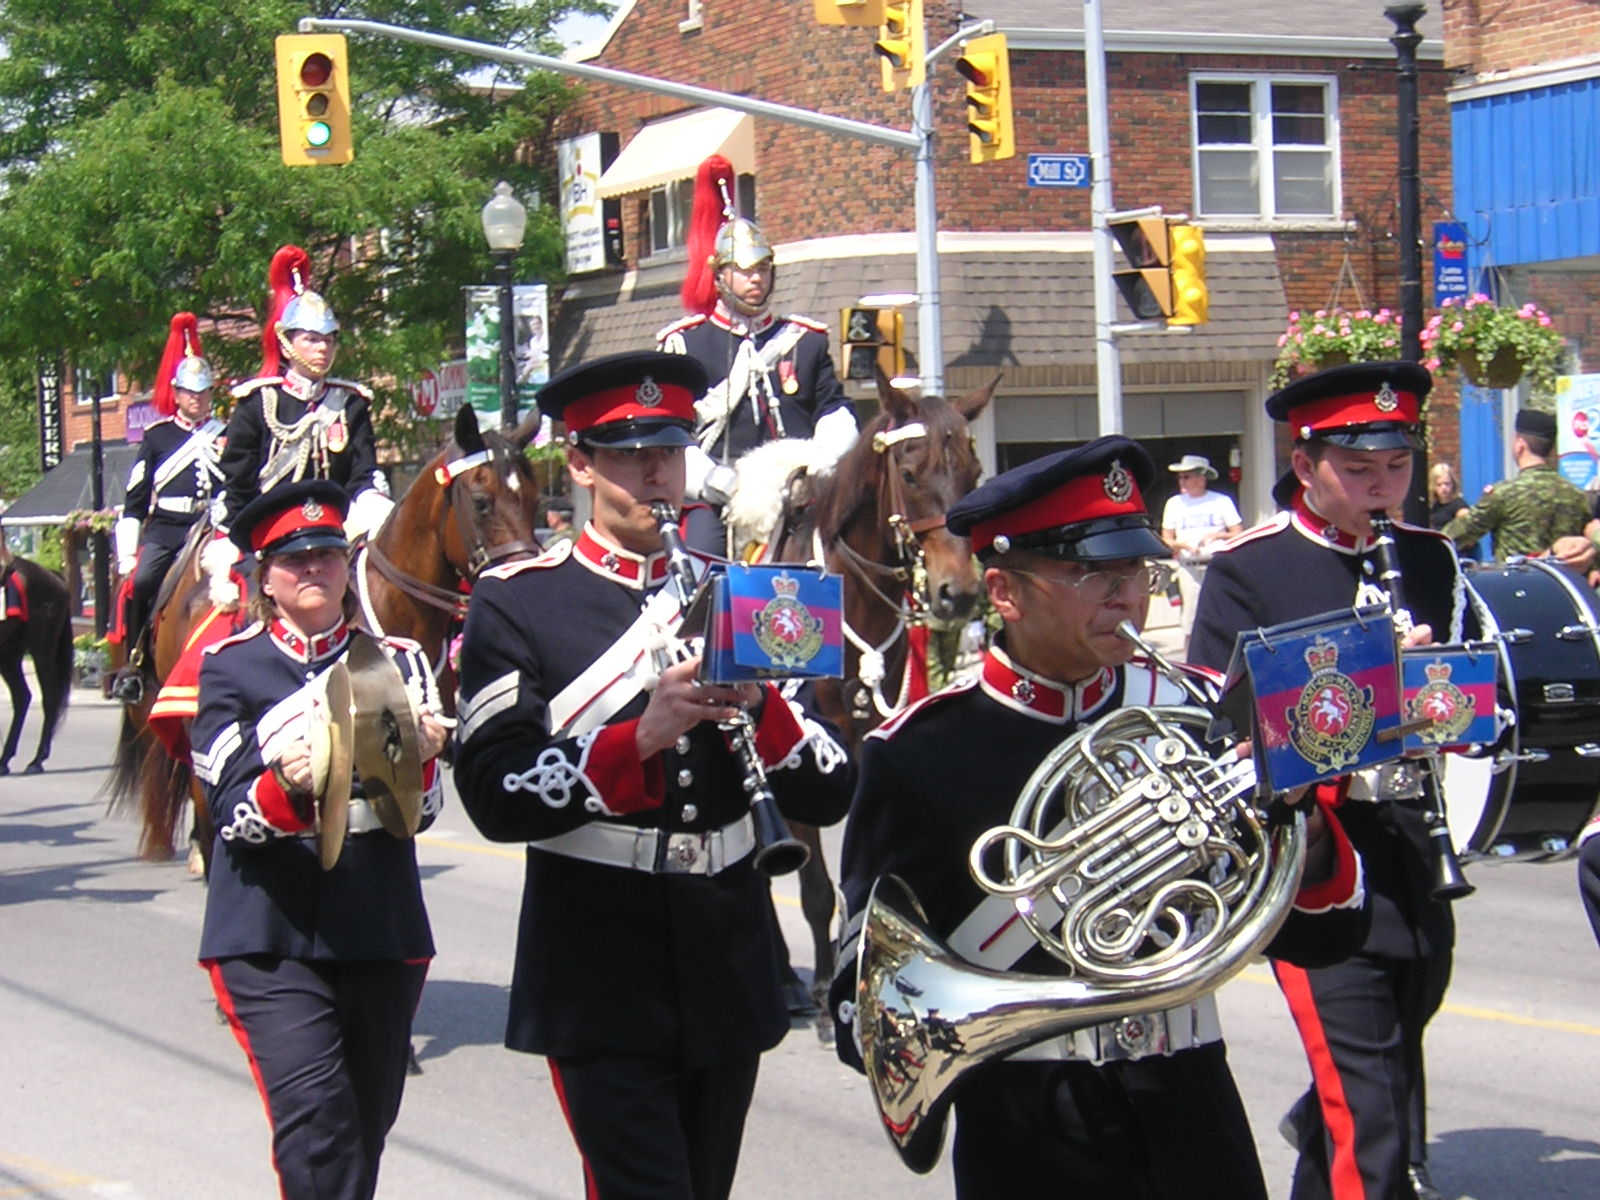 The governor general s foot guards - The Governor General S Horse Guard Band Includes Three Specialized Musical Sub Units The Fanfare Trumpeters The Brass Quintet And The Woodwind Quintet